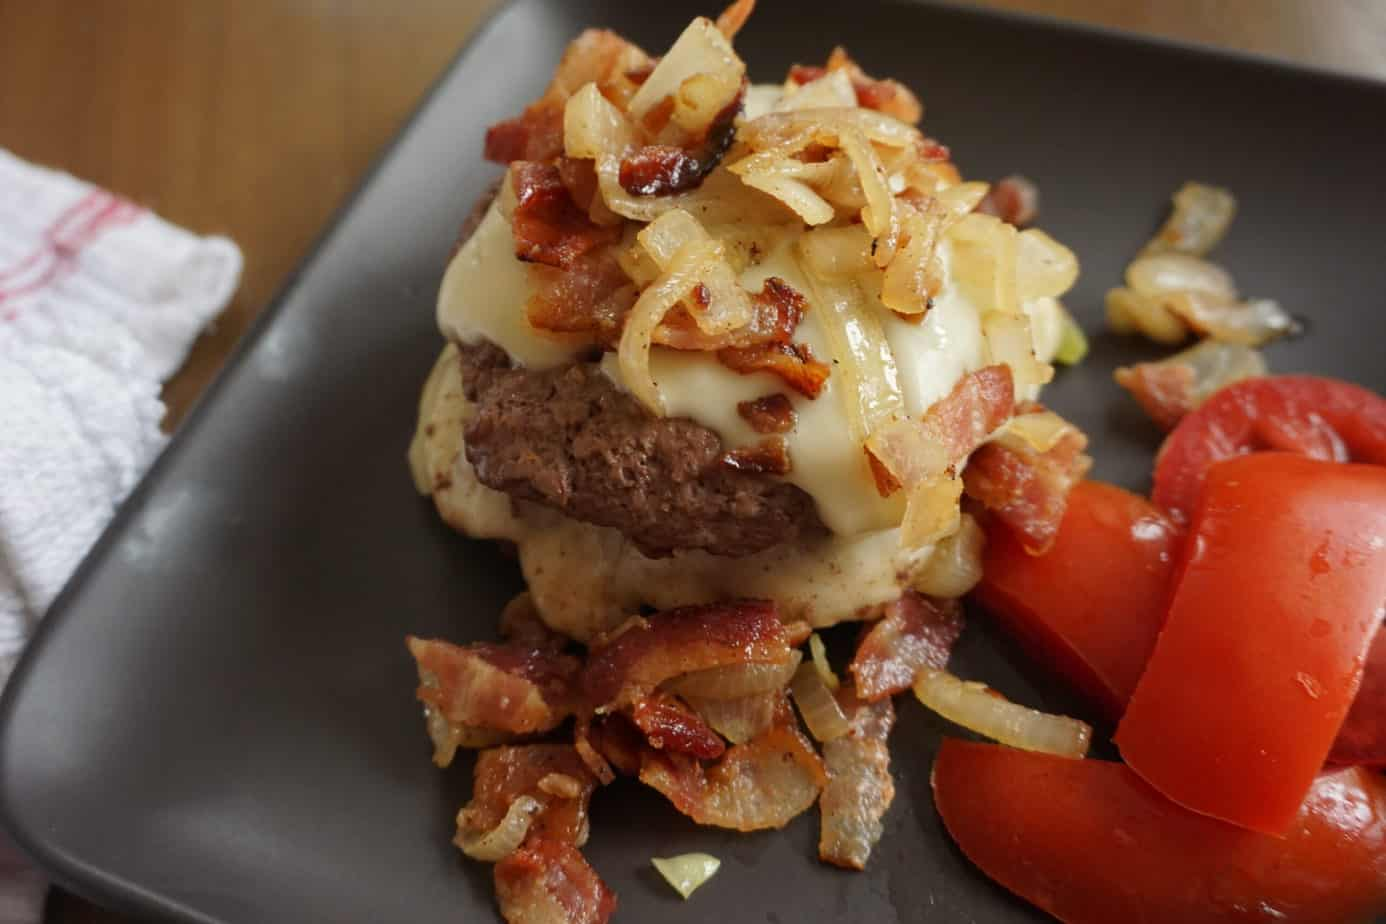 burger covered in cheese and bourbon bacon jam